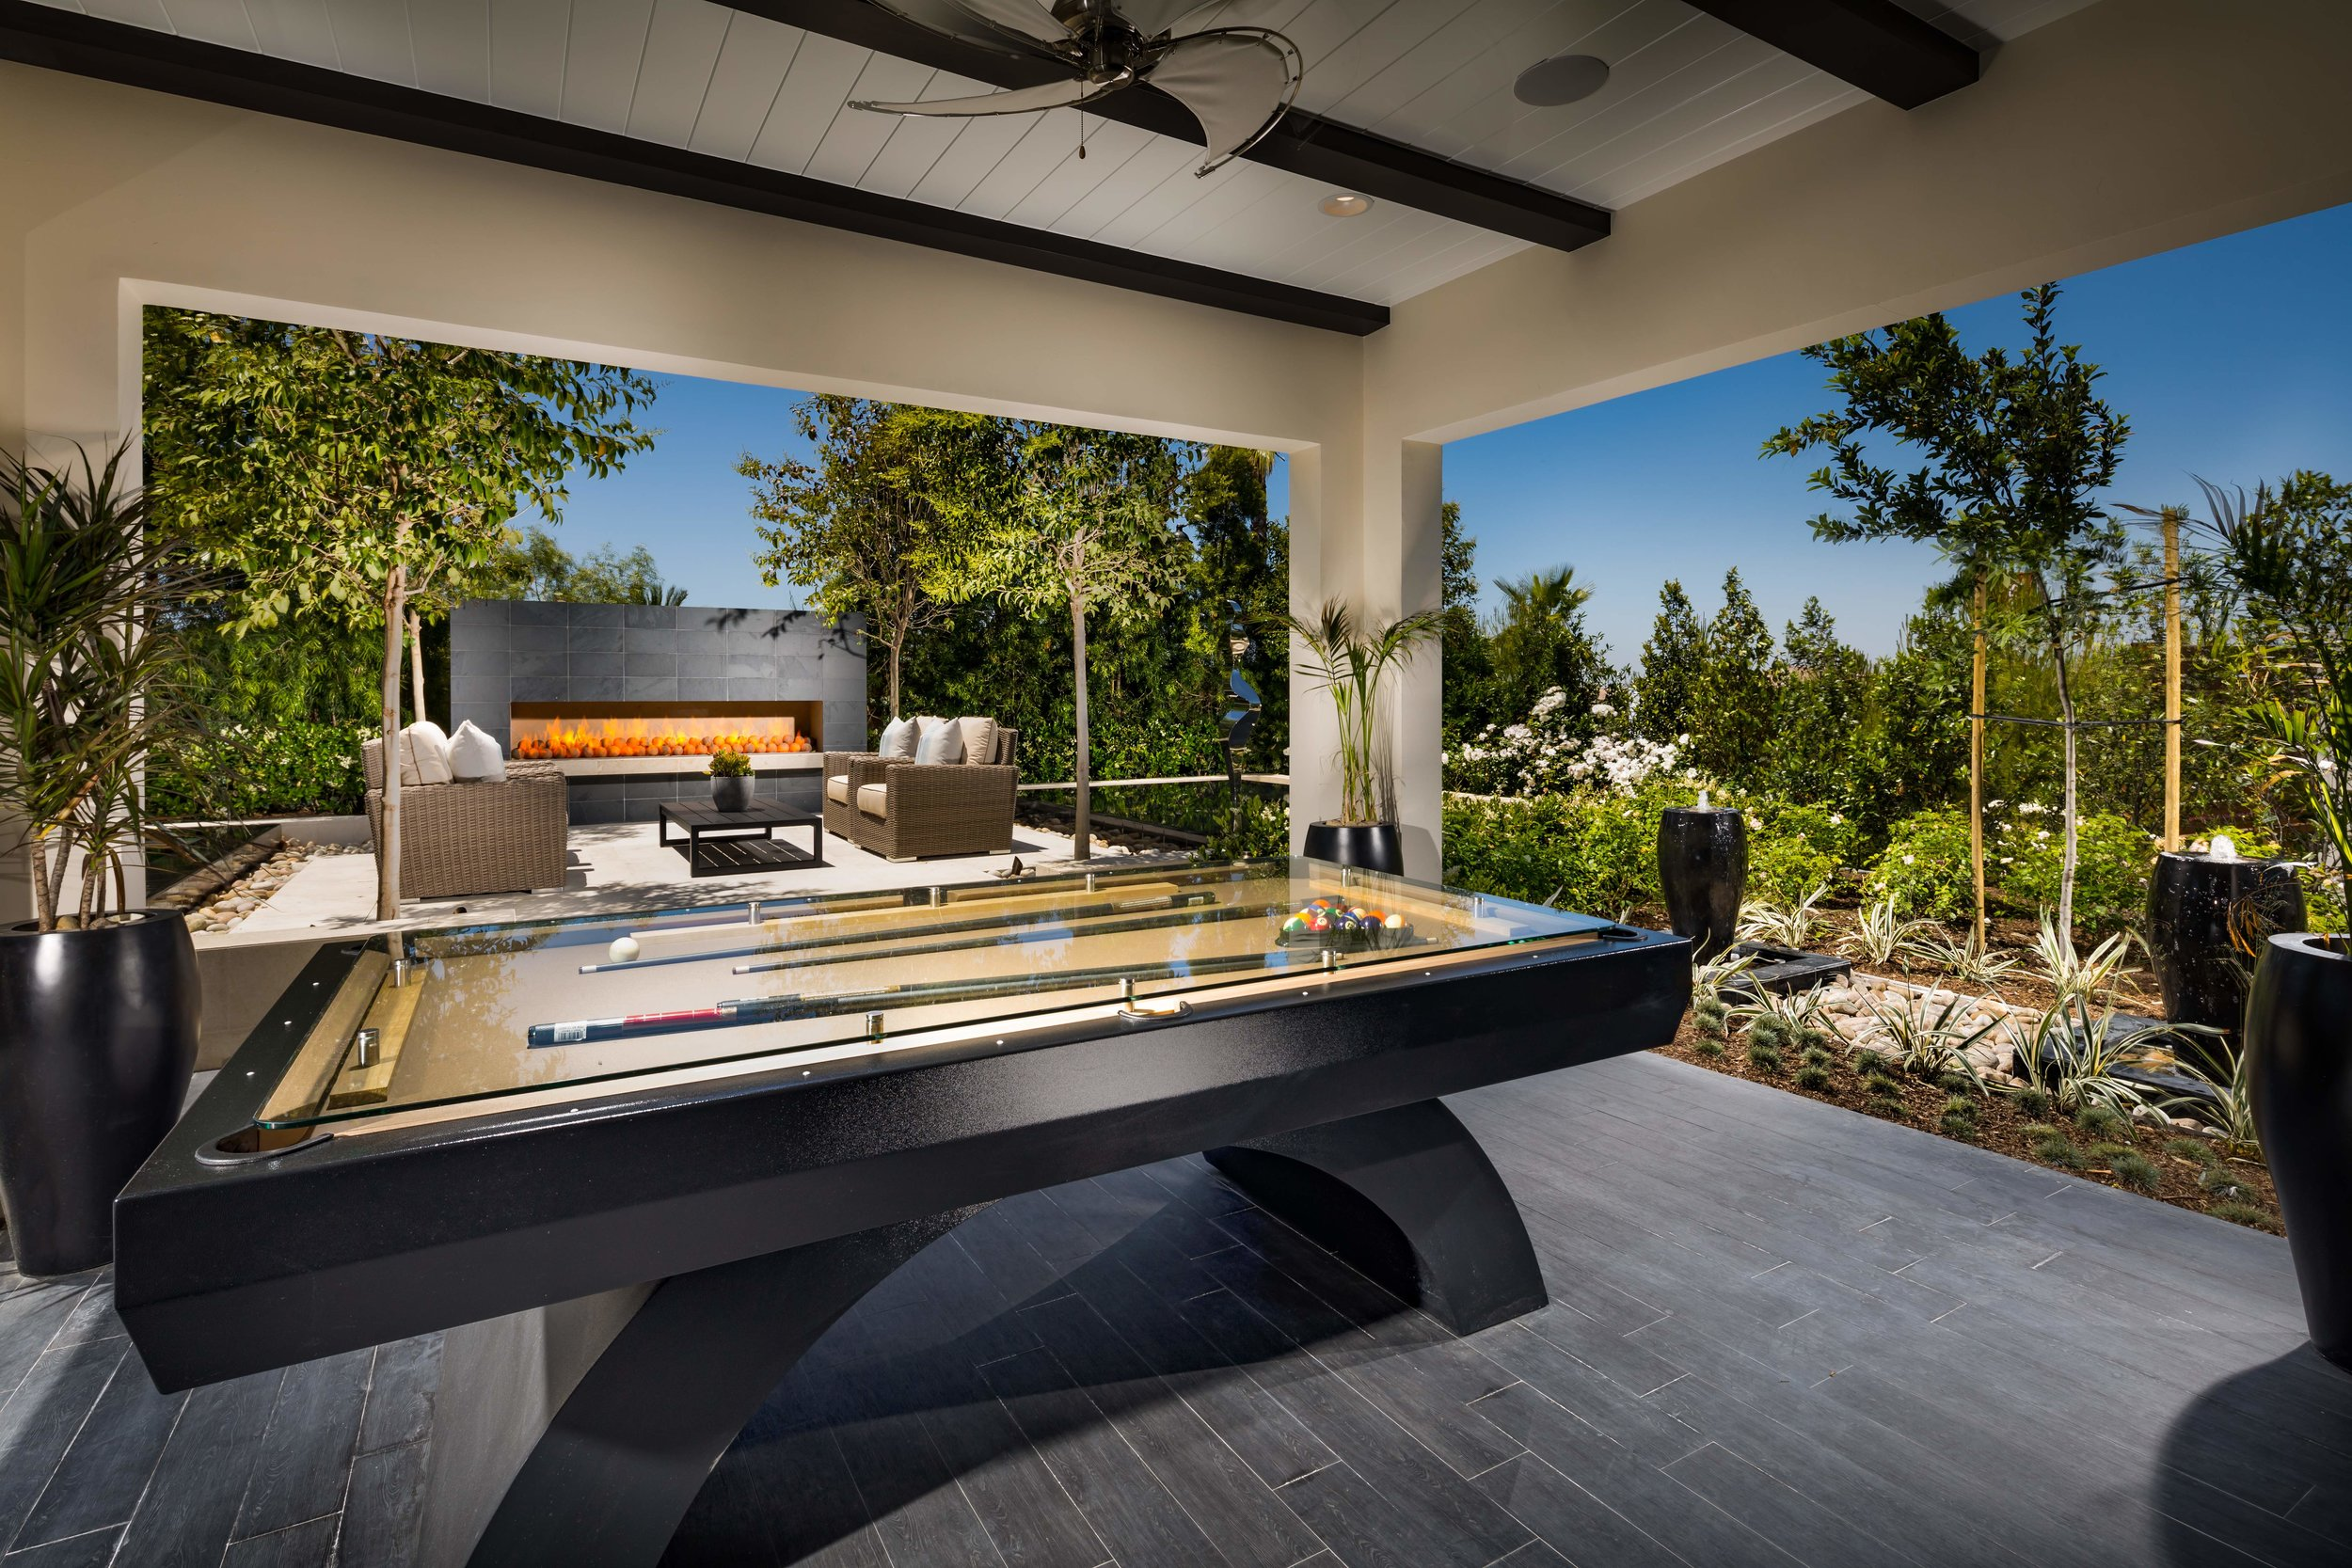 3-Viewpoint-Spanish_Covered Patio.jpg